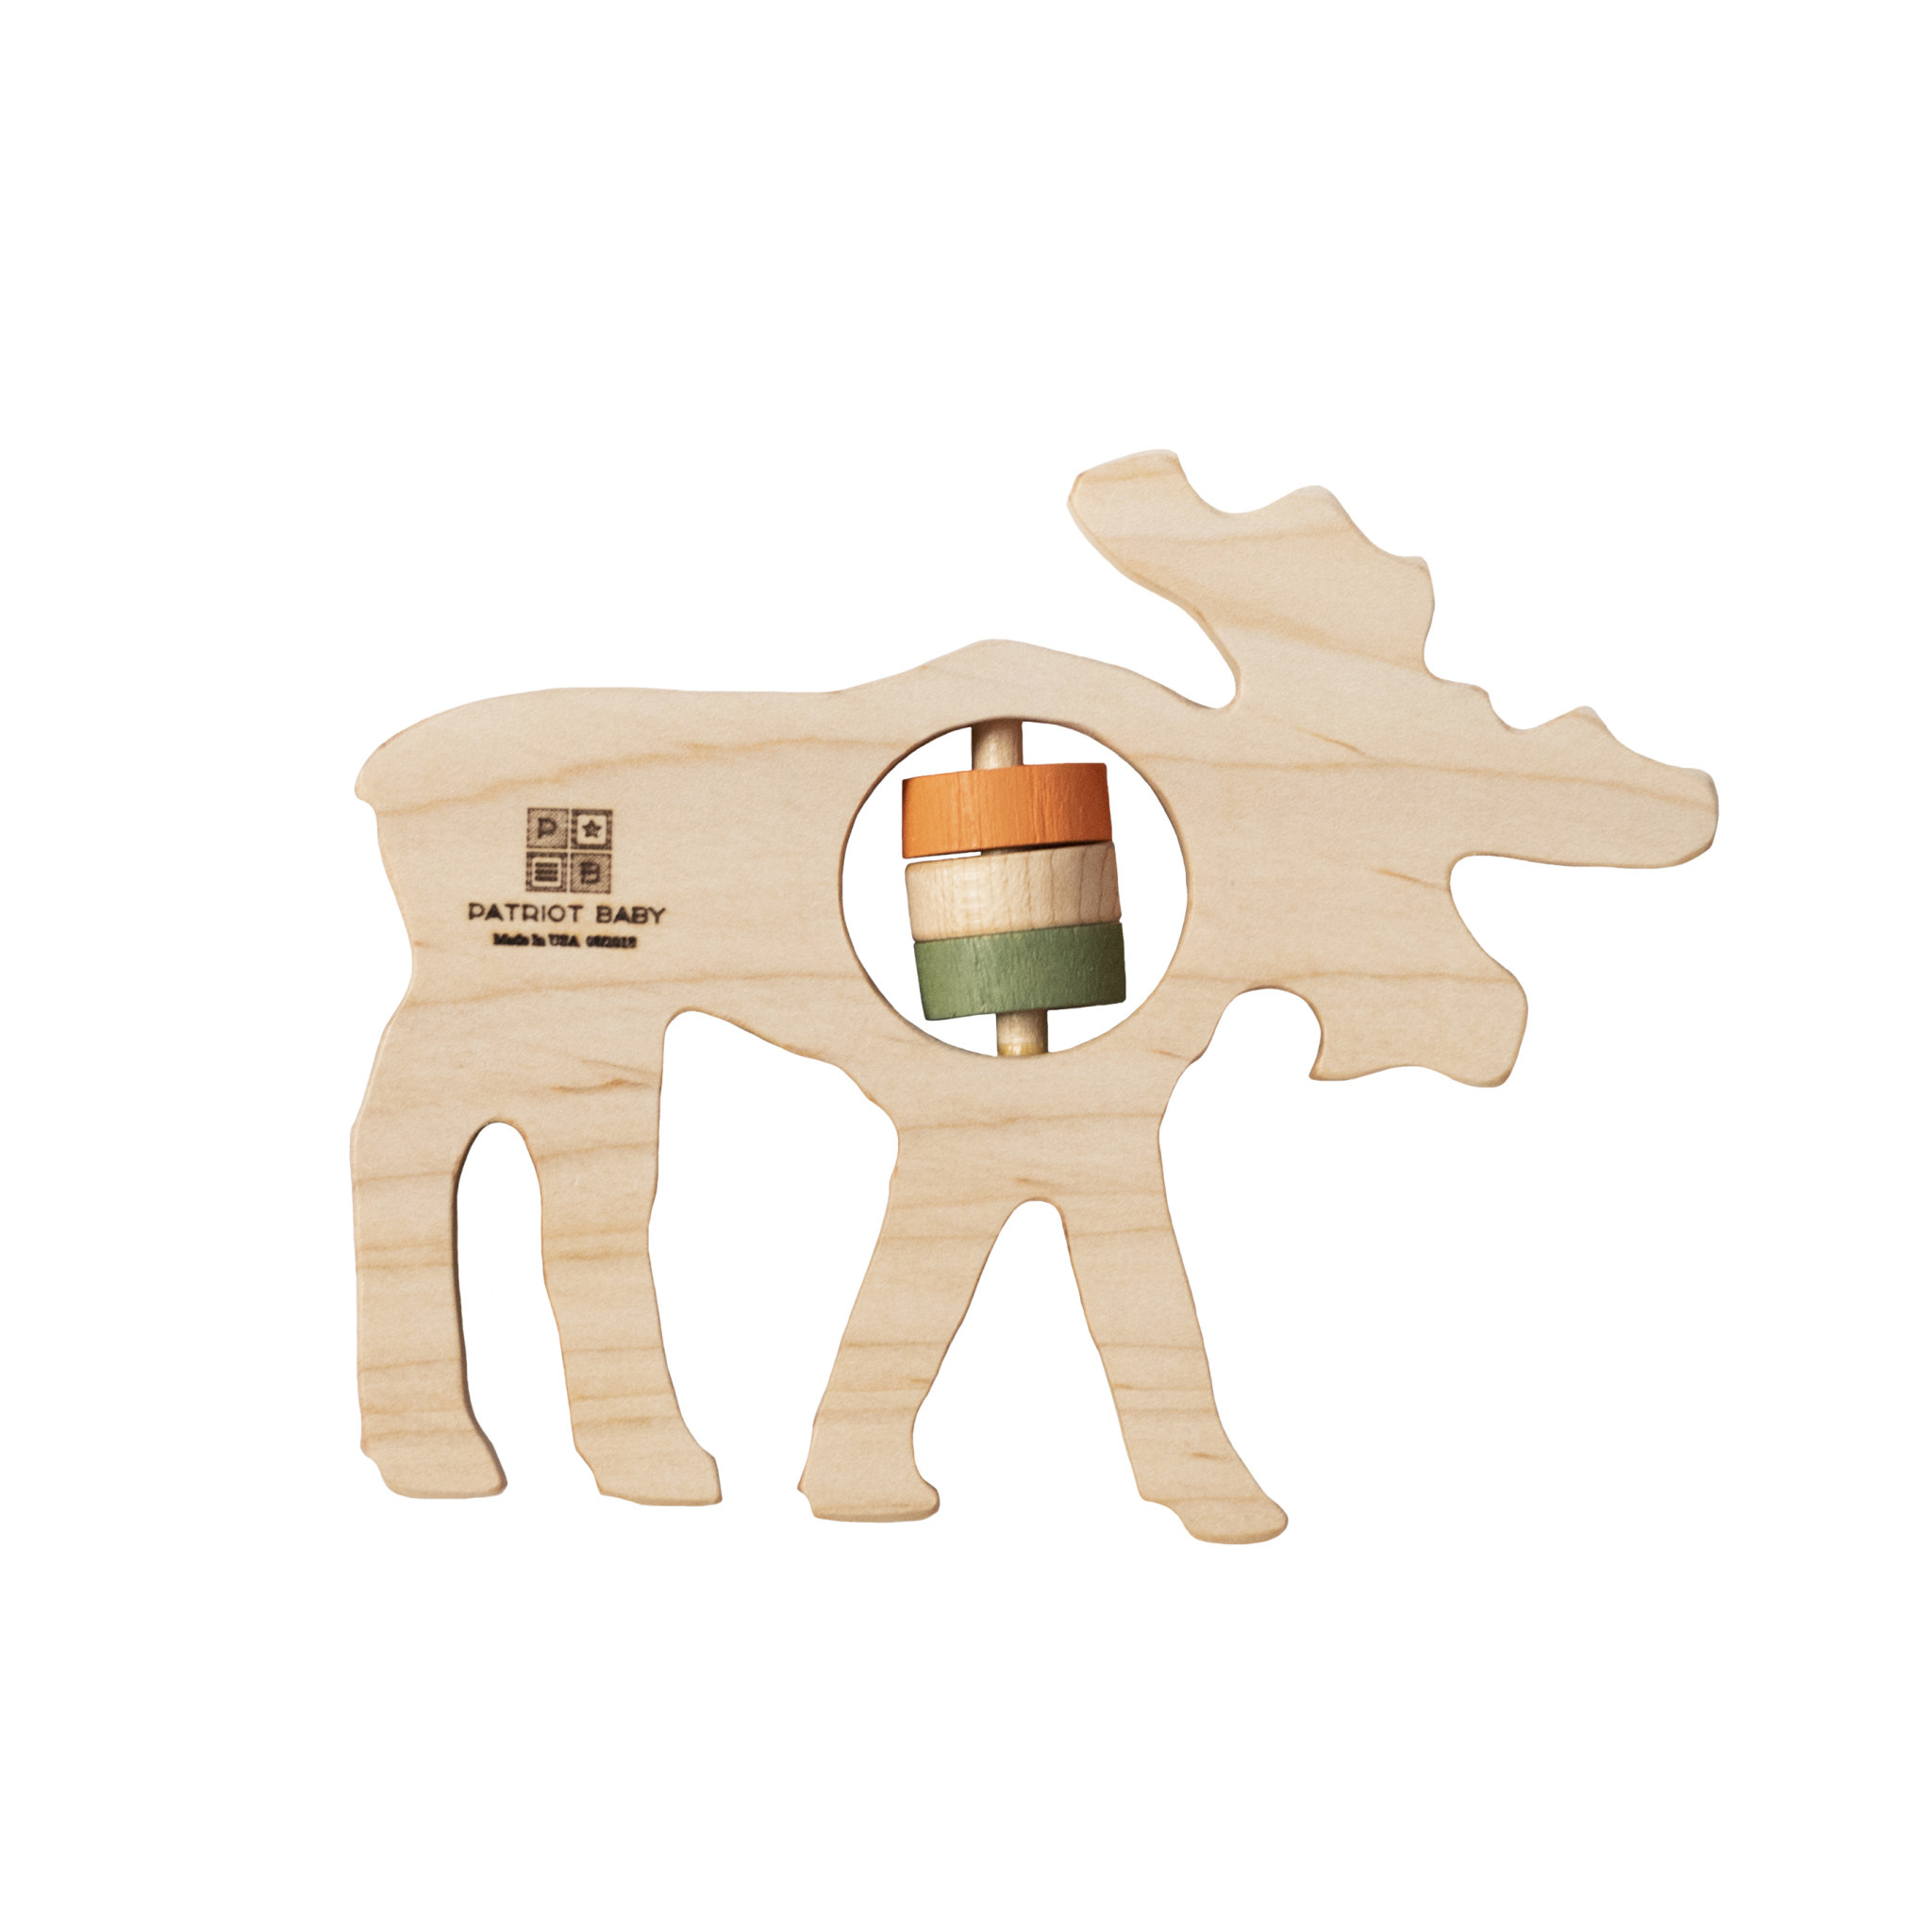 Patriot Baby Patriot Baby Wooden Teething Rattle - Moose